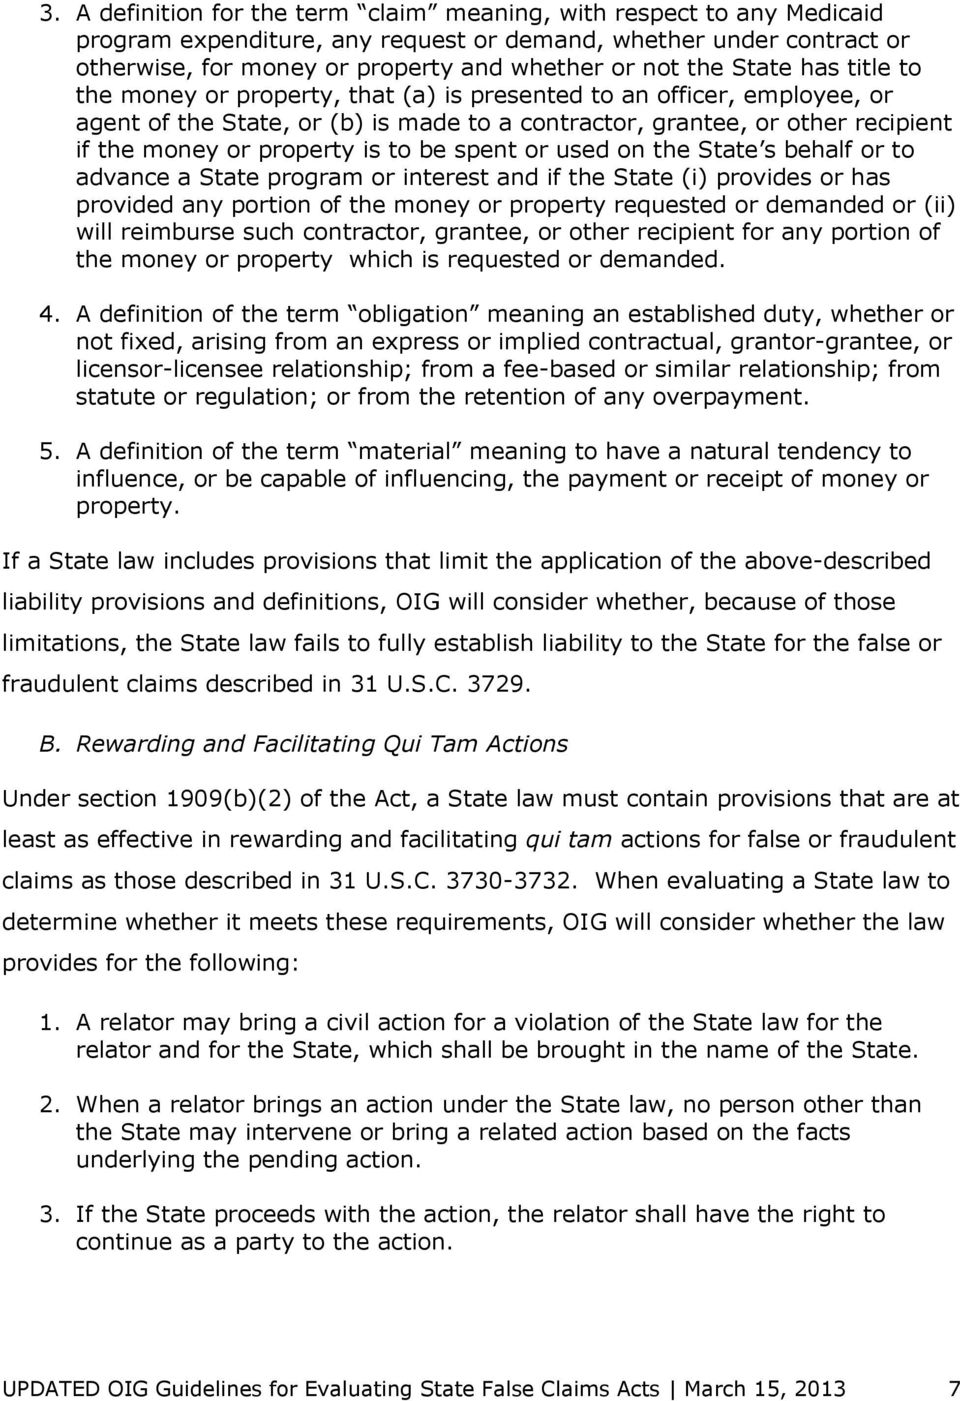 to be spent or used on the State s behalf or to advance a State program or interest and if the State (i) provides or has provided any portion of the money or property requested or demanded or (ii)